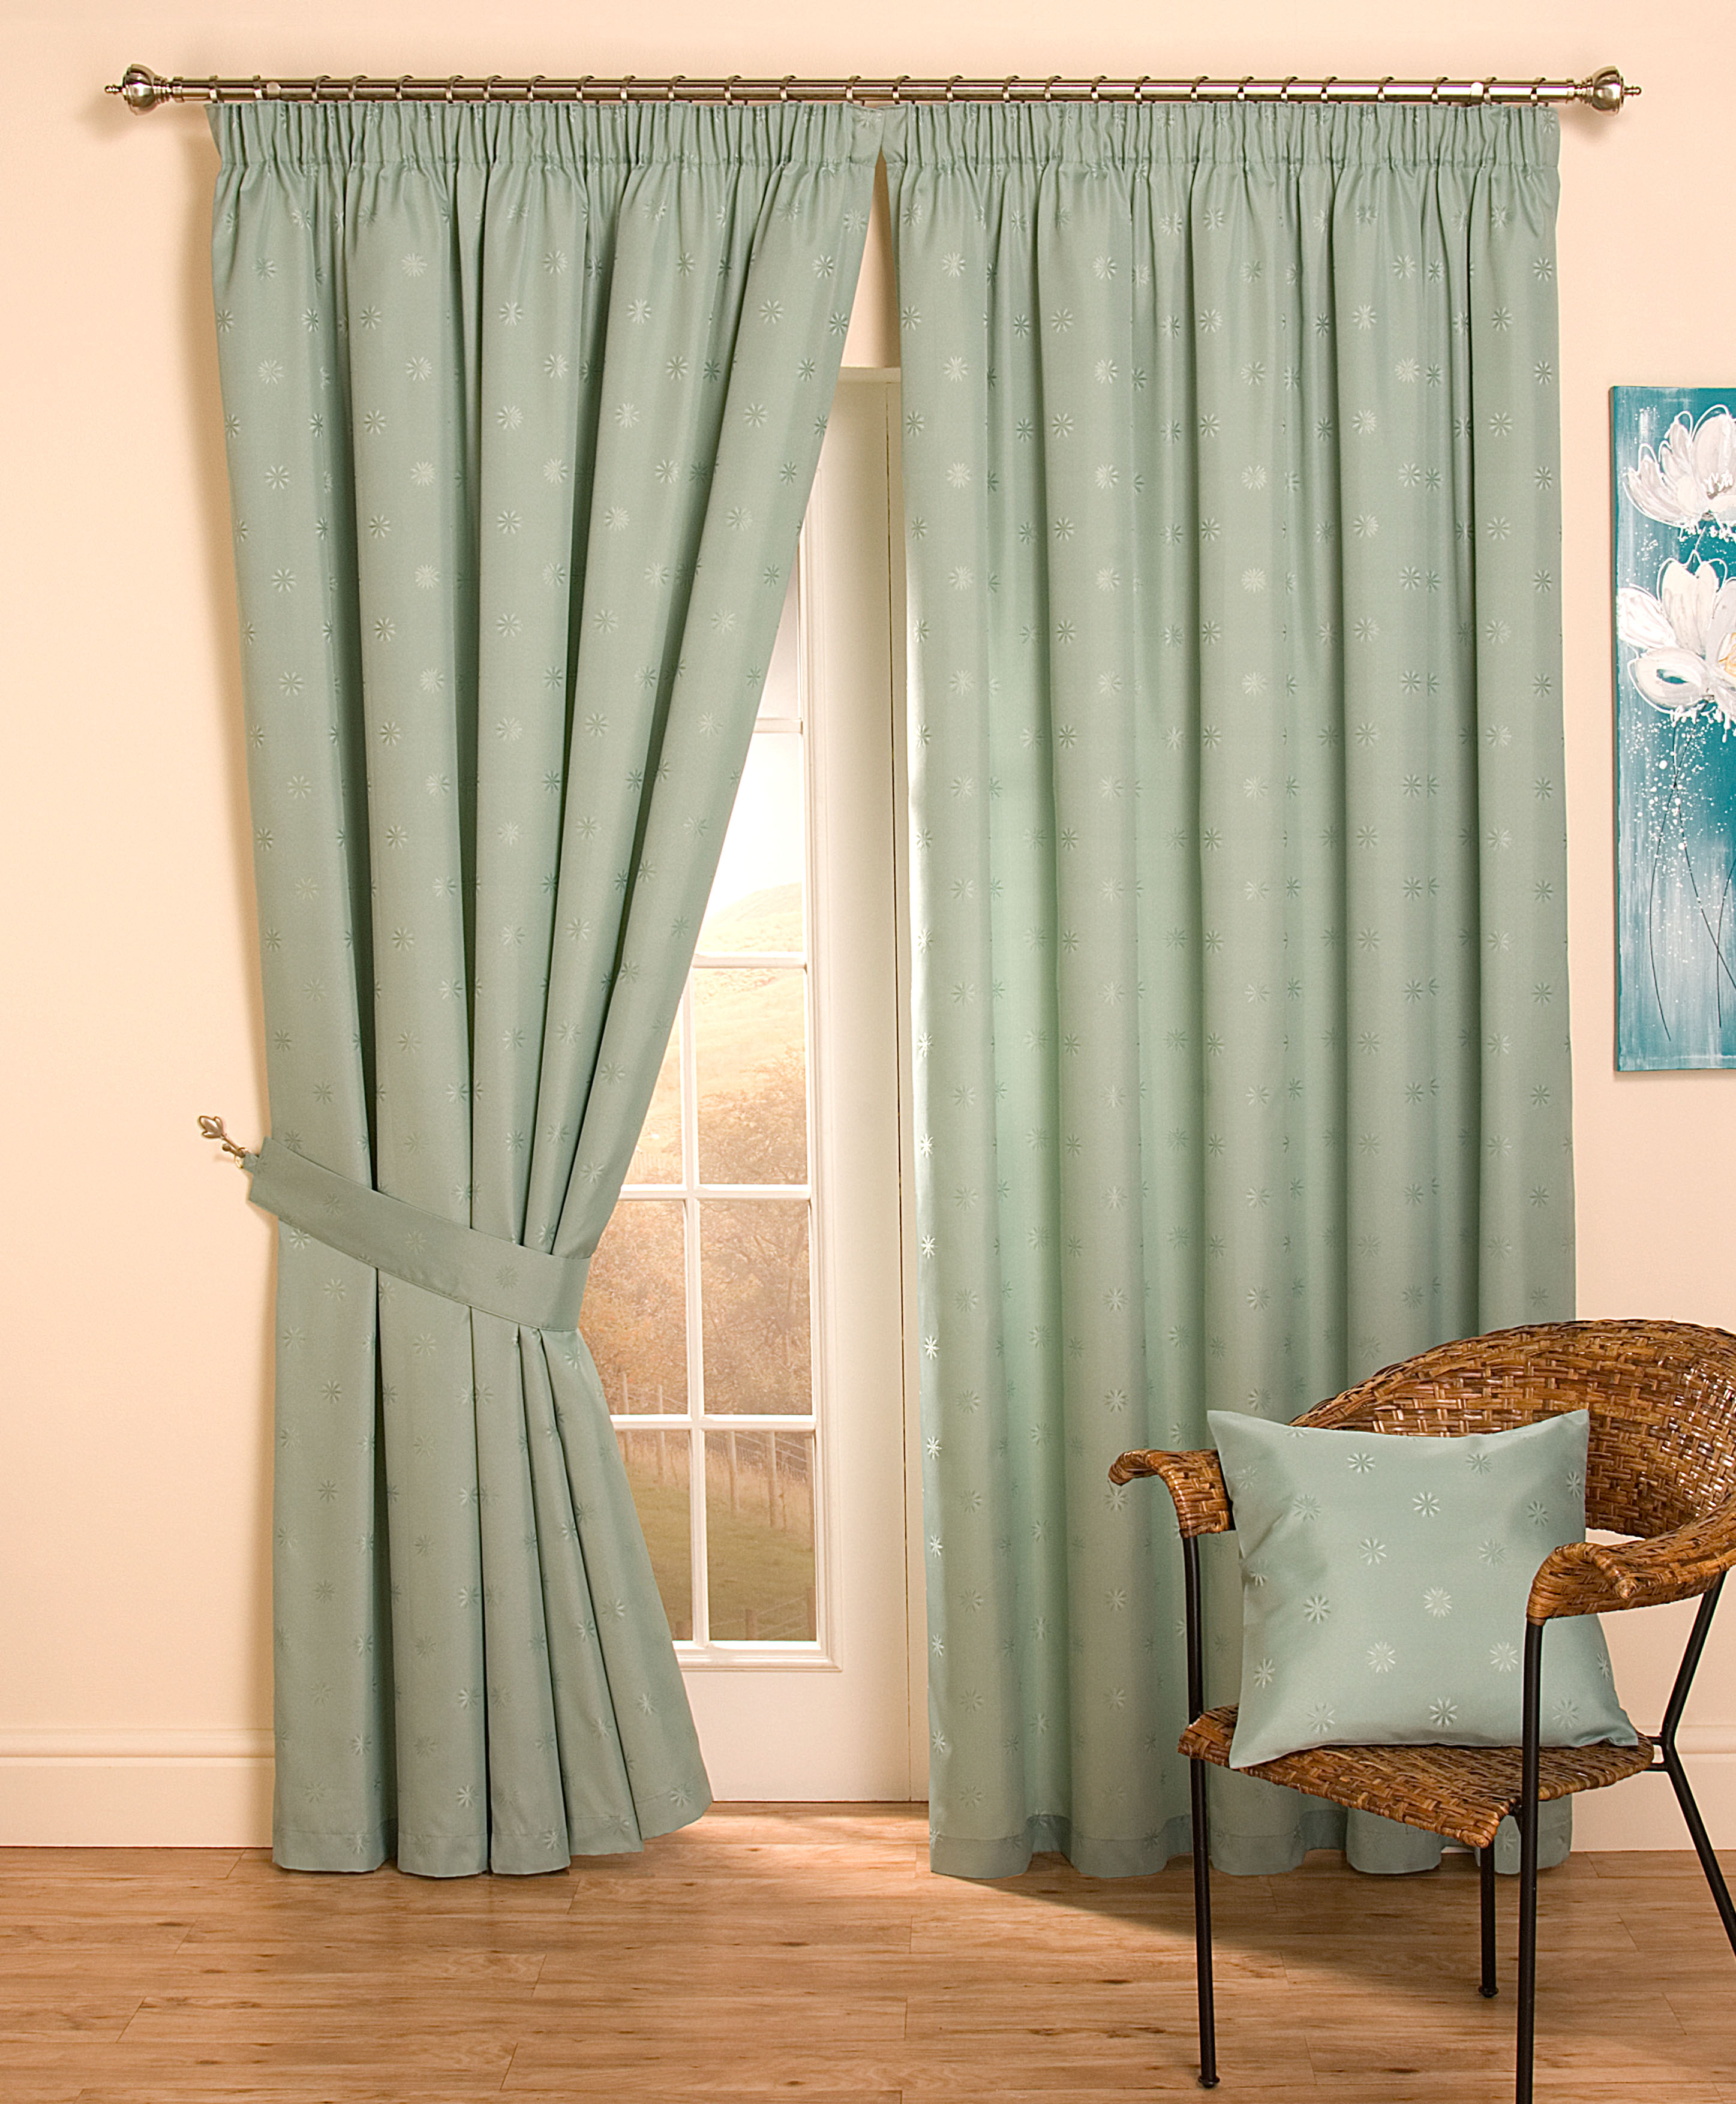 pinch find get tape lined shopping panel spellbound in guides rod champagne cheap window quotations pocket curtain inch pleat peri deals